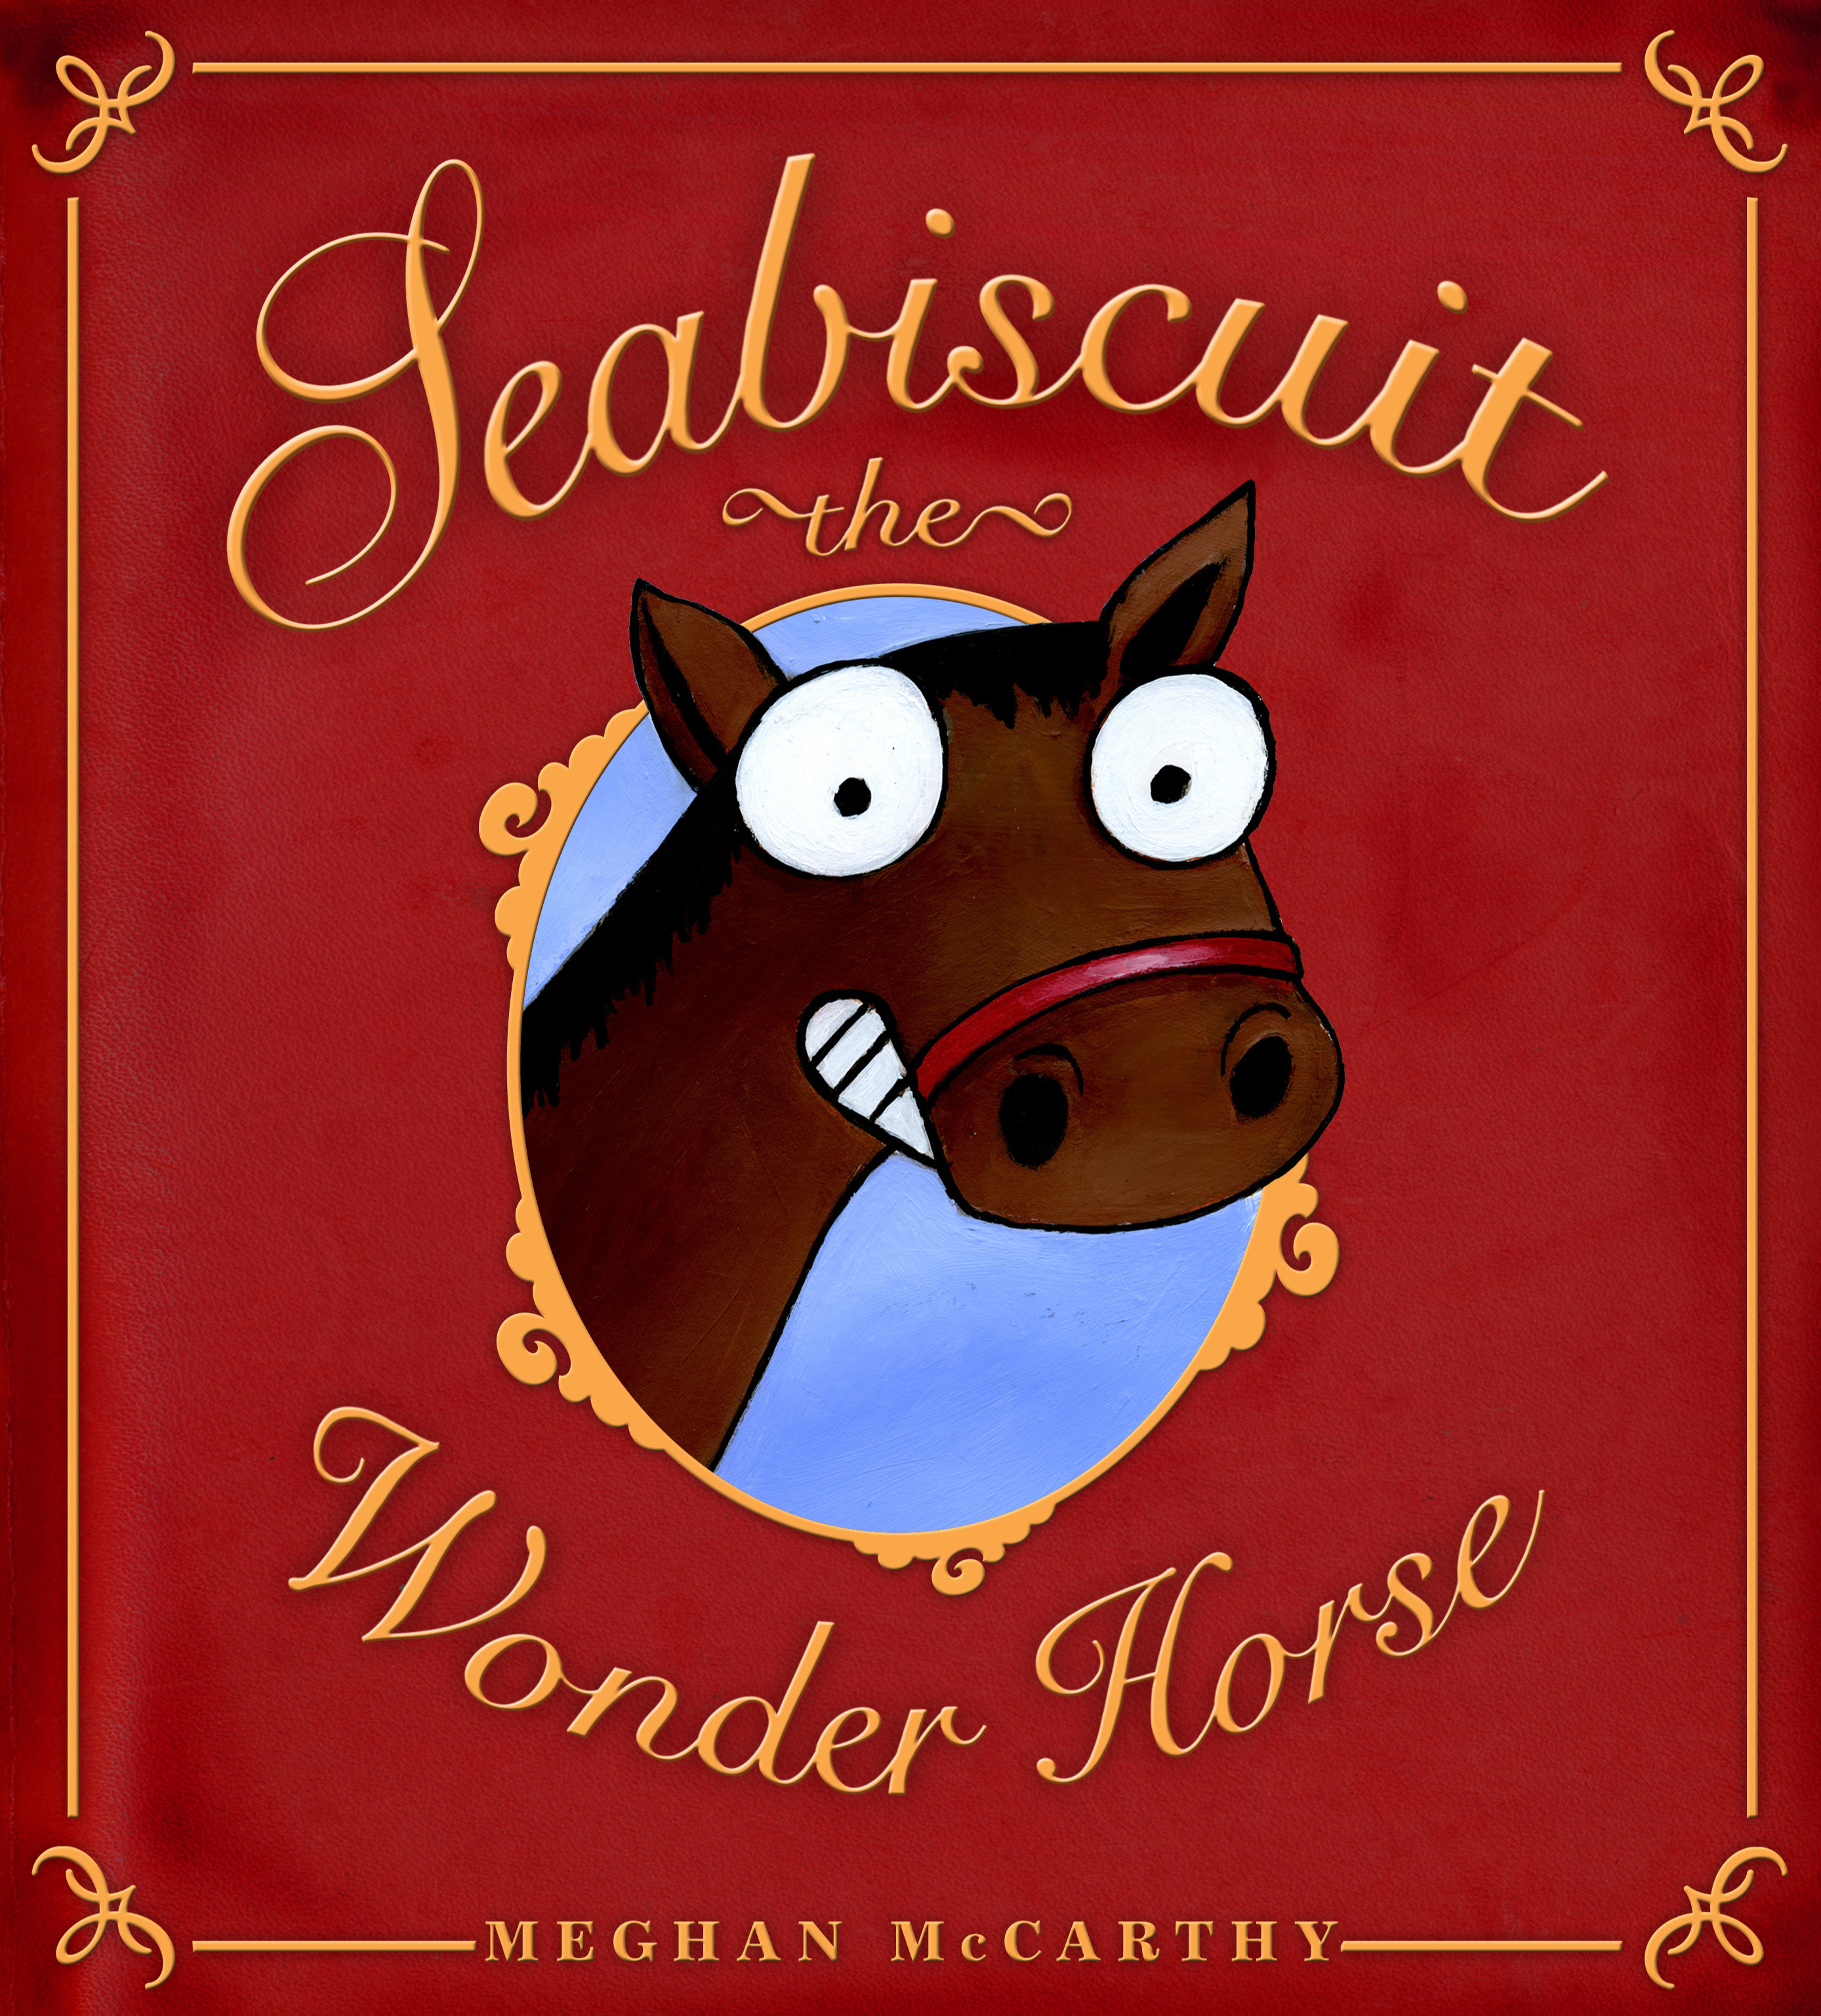 Seabiscuit the Wonder Horse | Book by Meghan McCarthy | Official ...